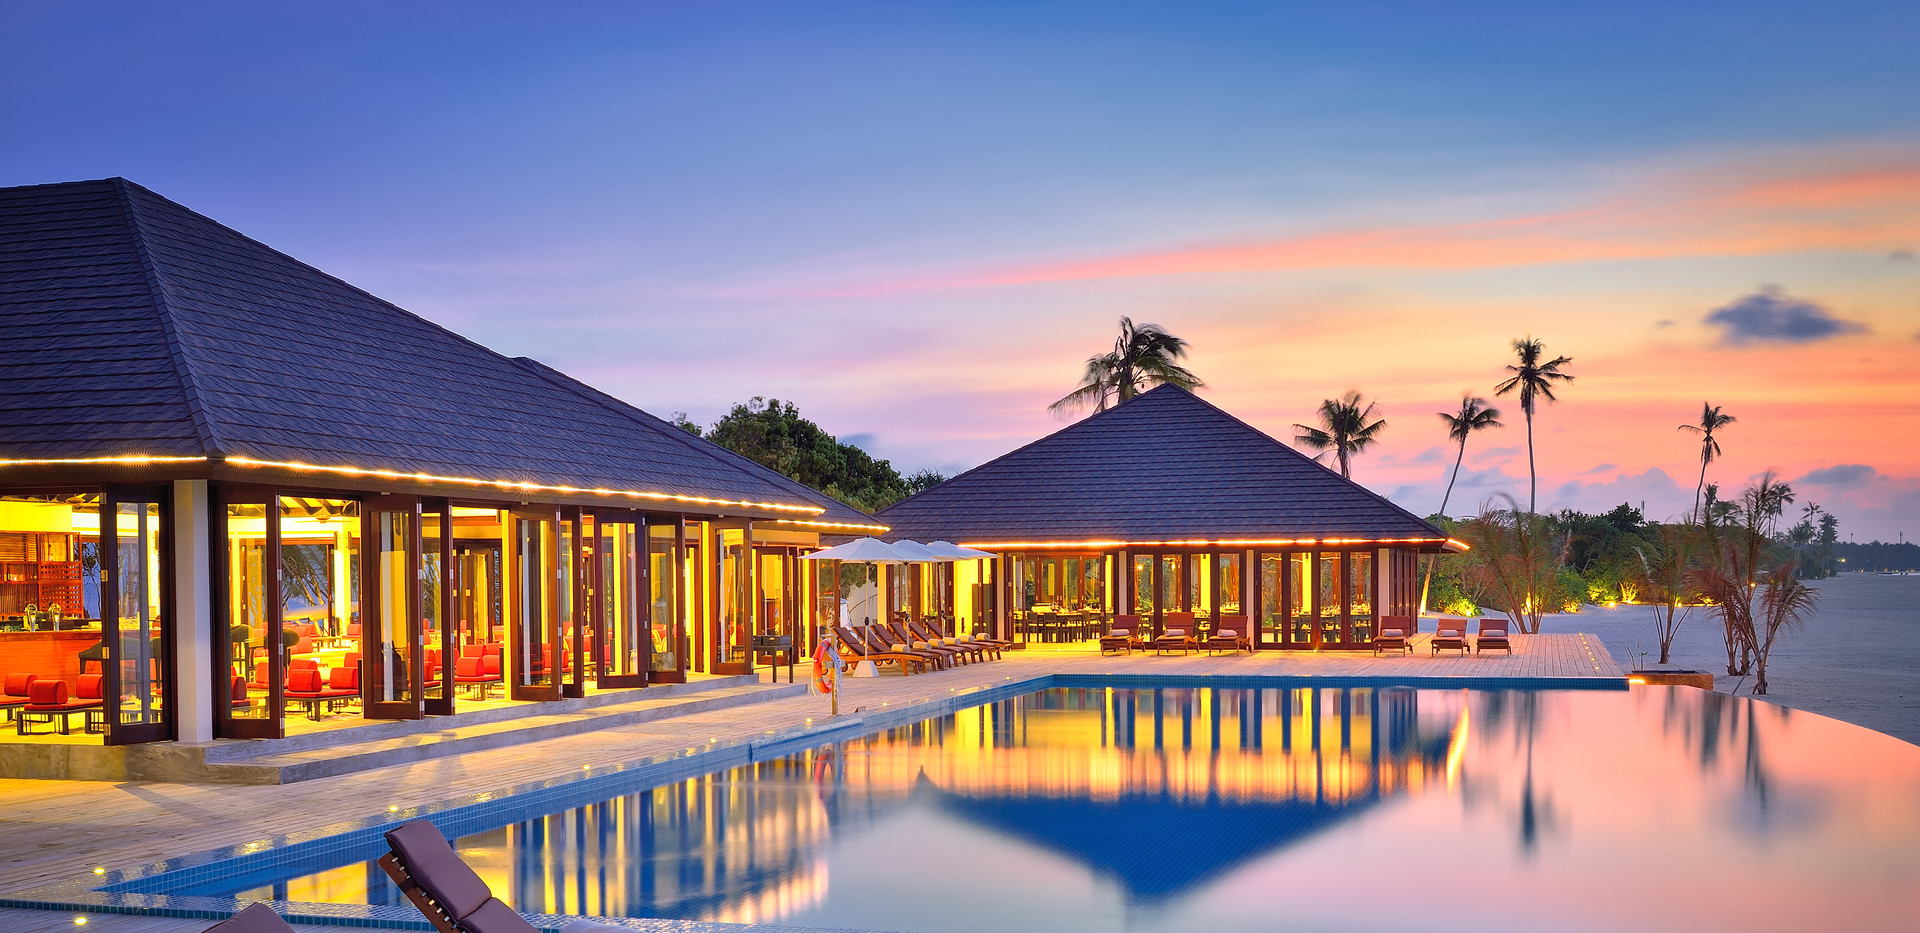 THE SUNSET - EXTERIOR VIEW WITH POOL DEC